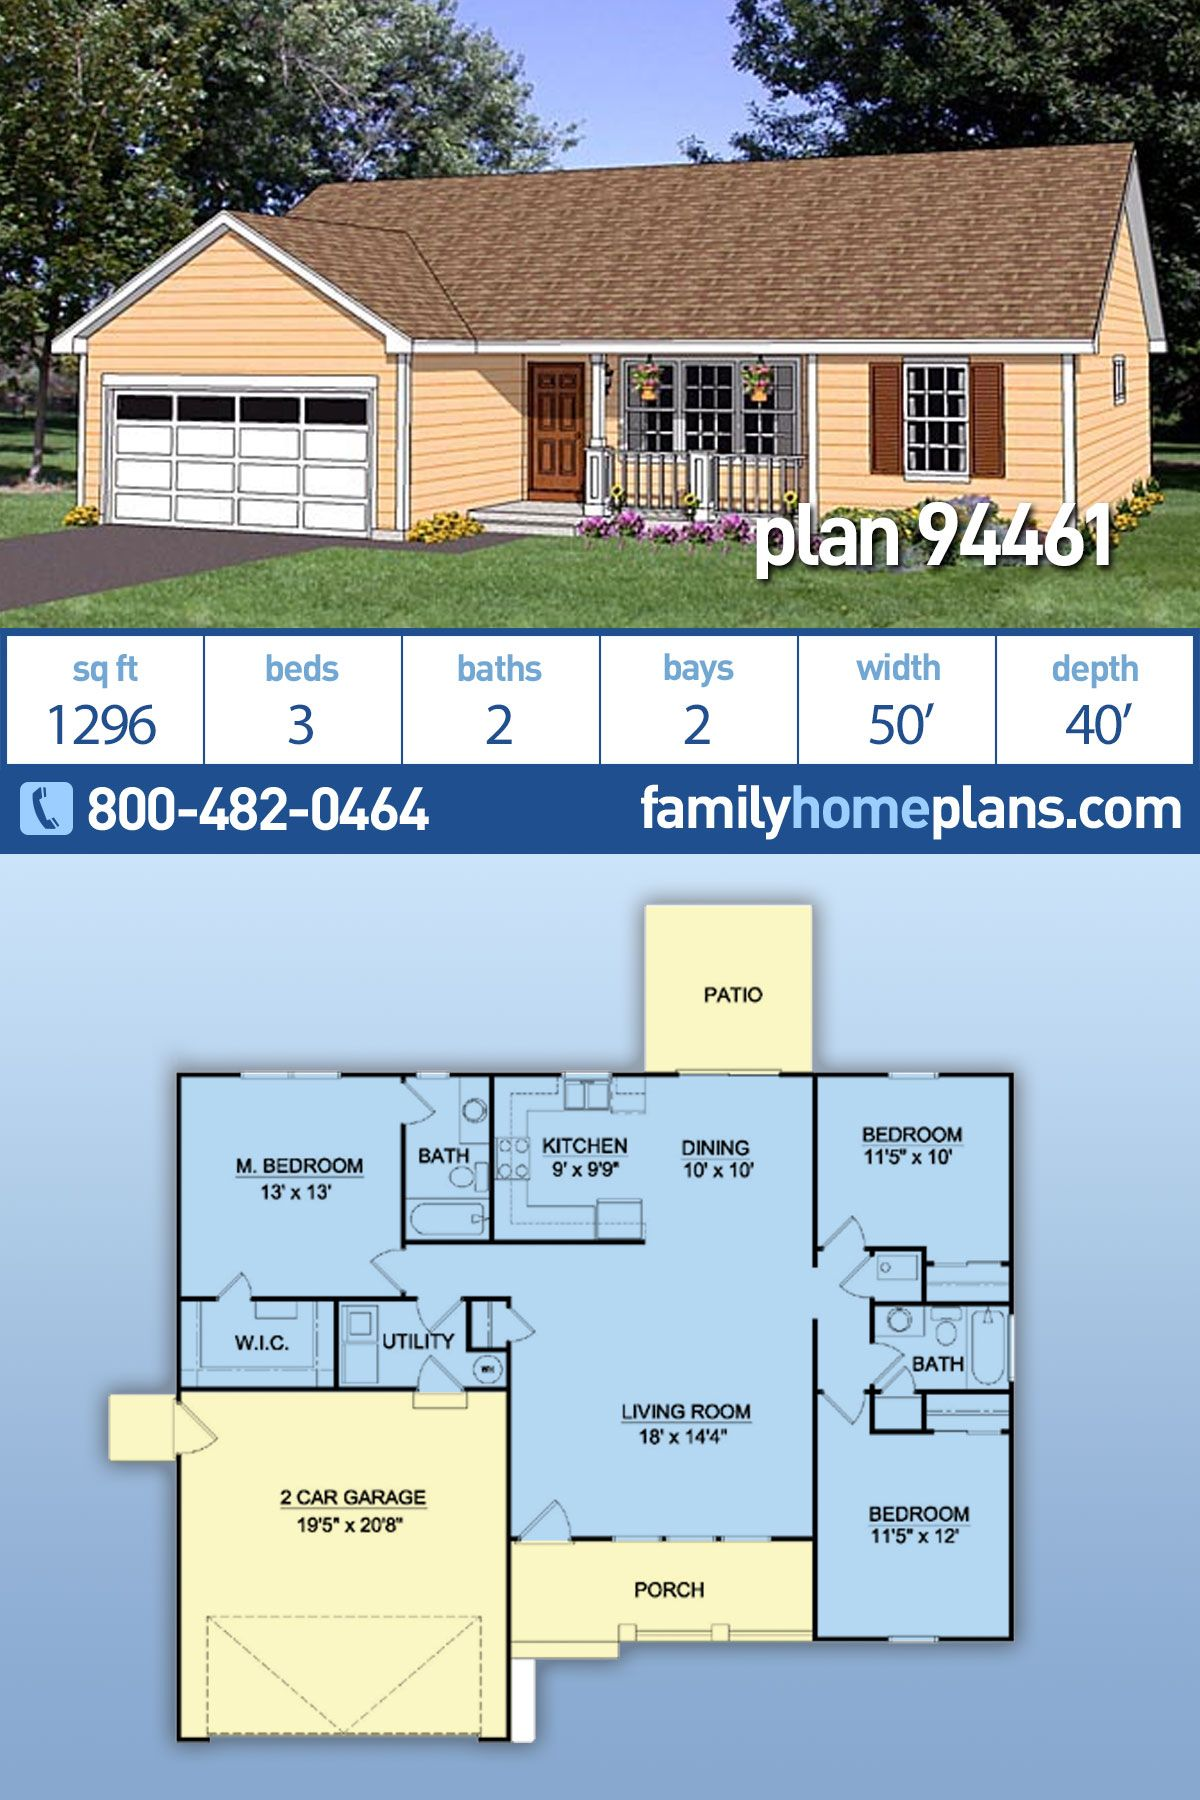 Ranch Style House Plan 94461 With 3 Bed 2 Bath 2 Car Garage Ranch Style House Plans Ranch House Plans Family House Plans